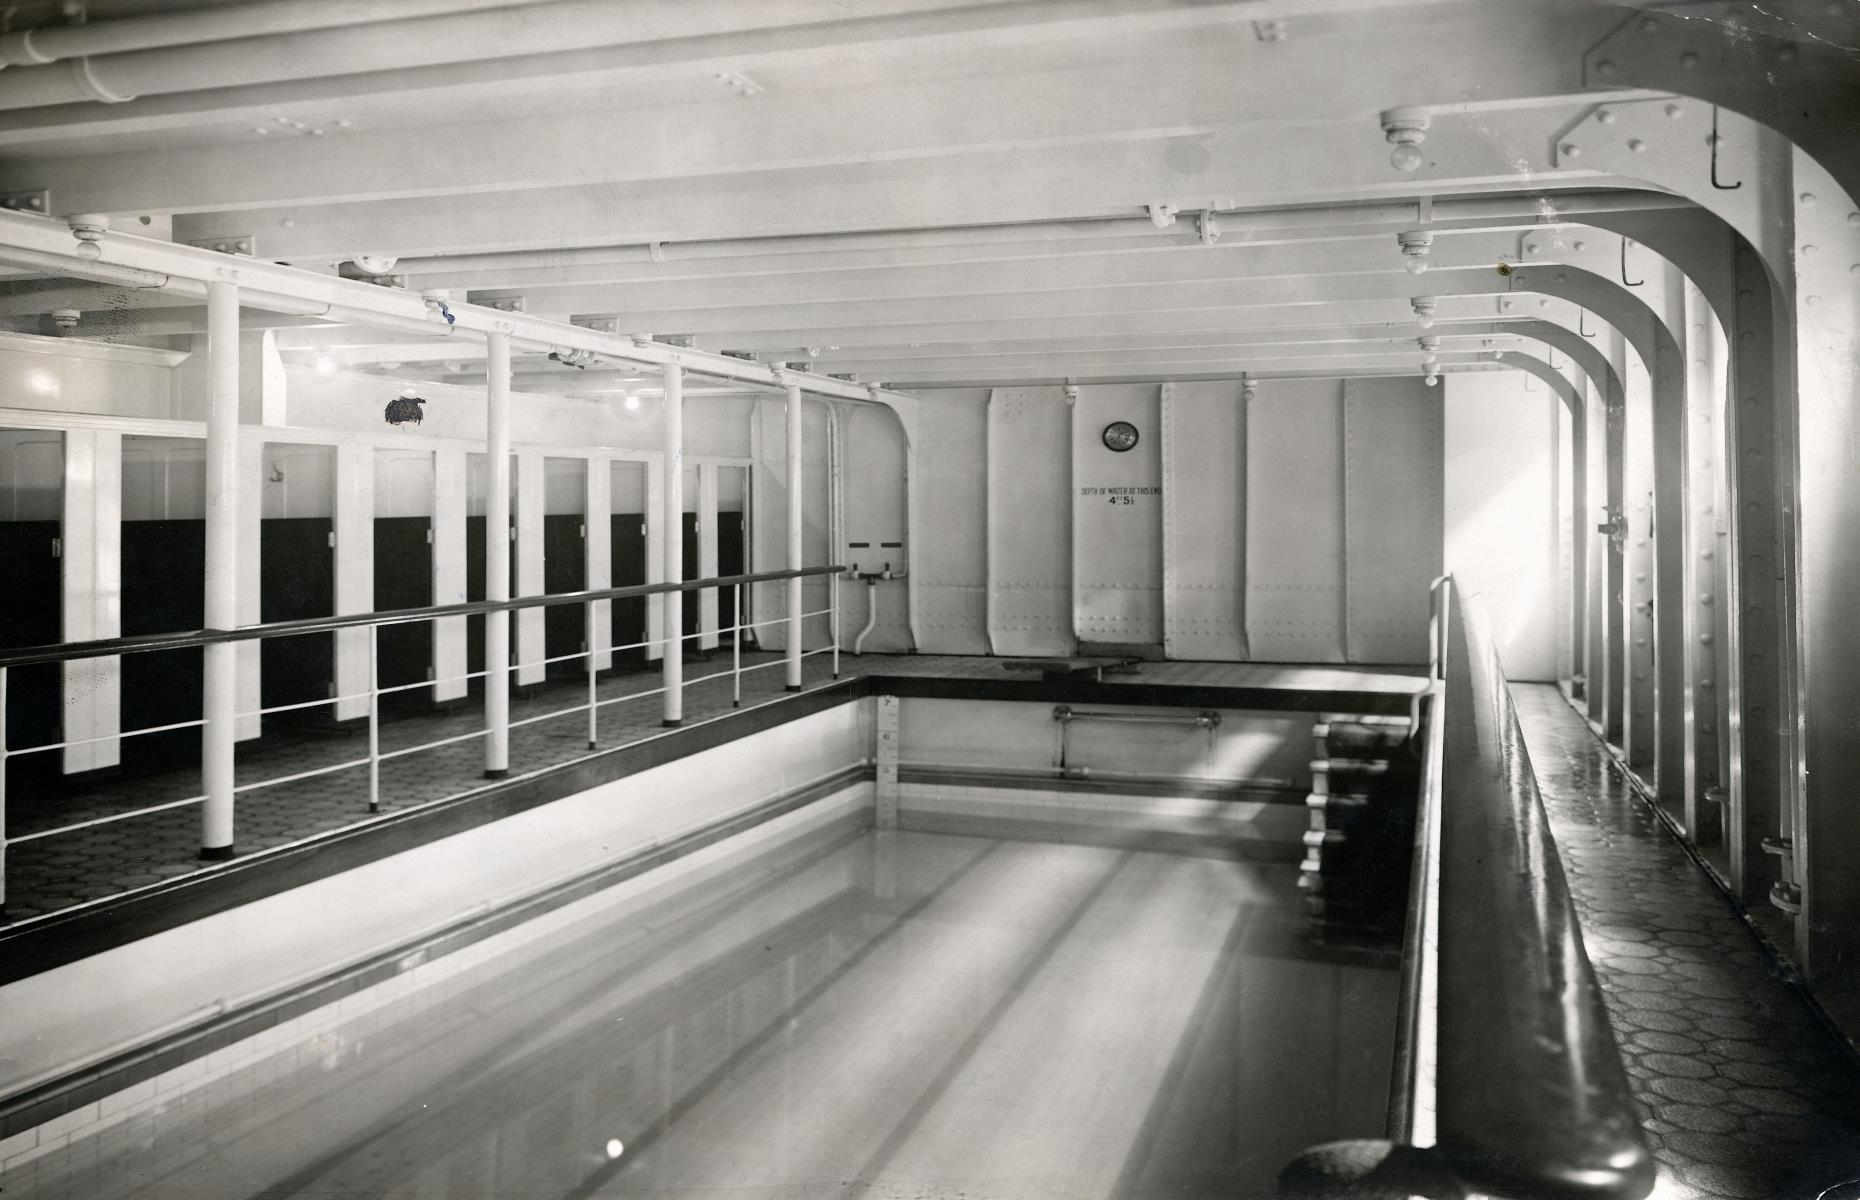 """Slide 14 of 46: Located in the middle deck, alongside the Turkish Baths, was an impressive swimming pool for first-class passengers only. A novel feature for the time the """"swimming bath"""" was 30 feet (9.14m) long and 14 feet (4.3m) wide and filled with heated saltwater which was pumped into the pool from the sea, via a tank. The bath was available for ladies between 10am and 1pm and for men from 2pm to 6pm."""